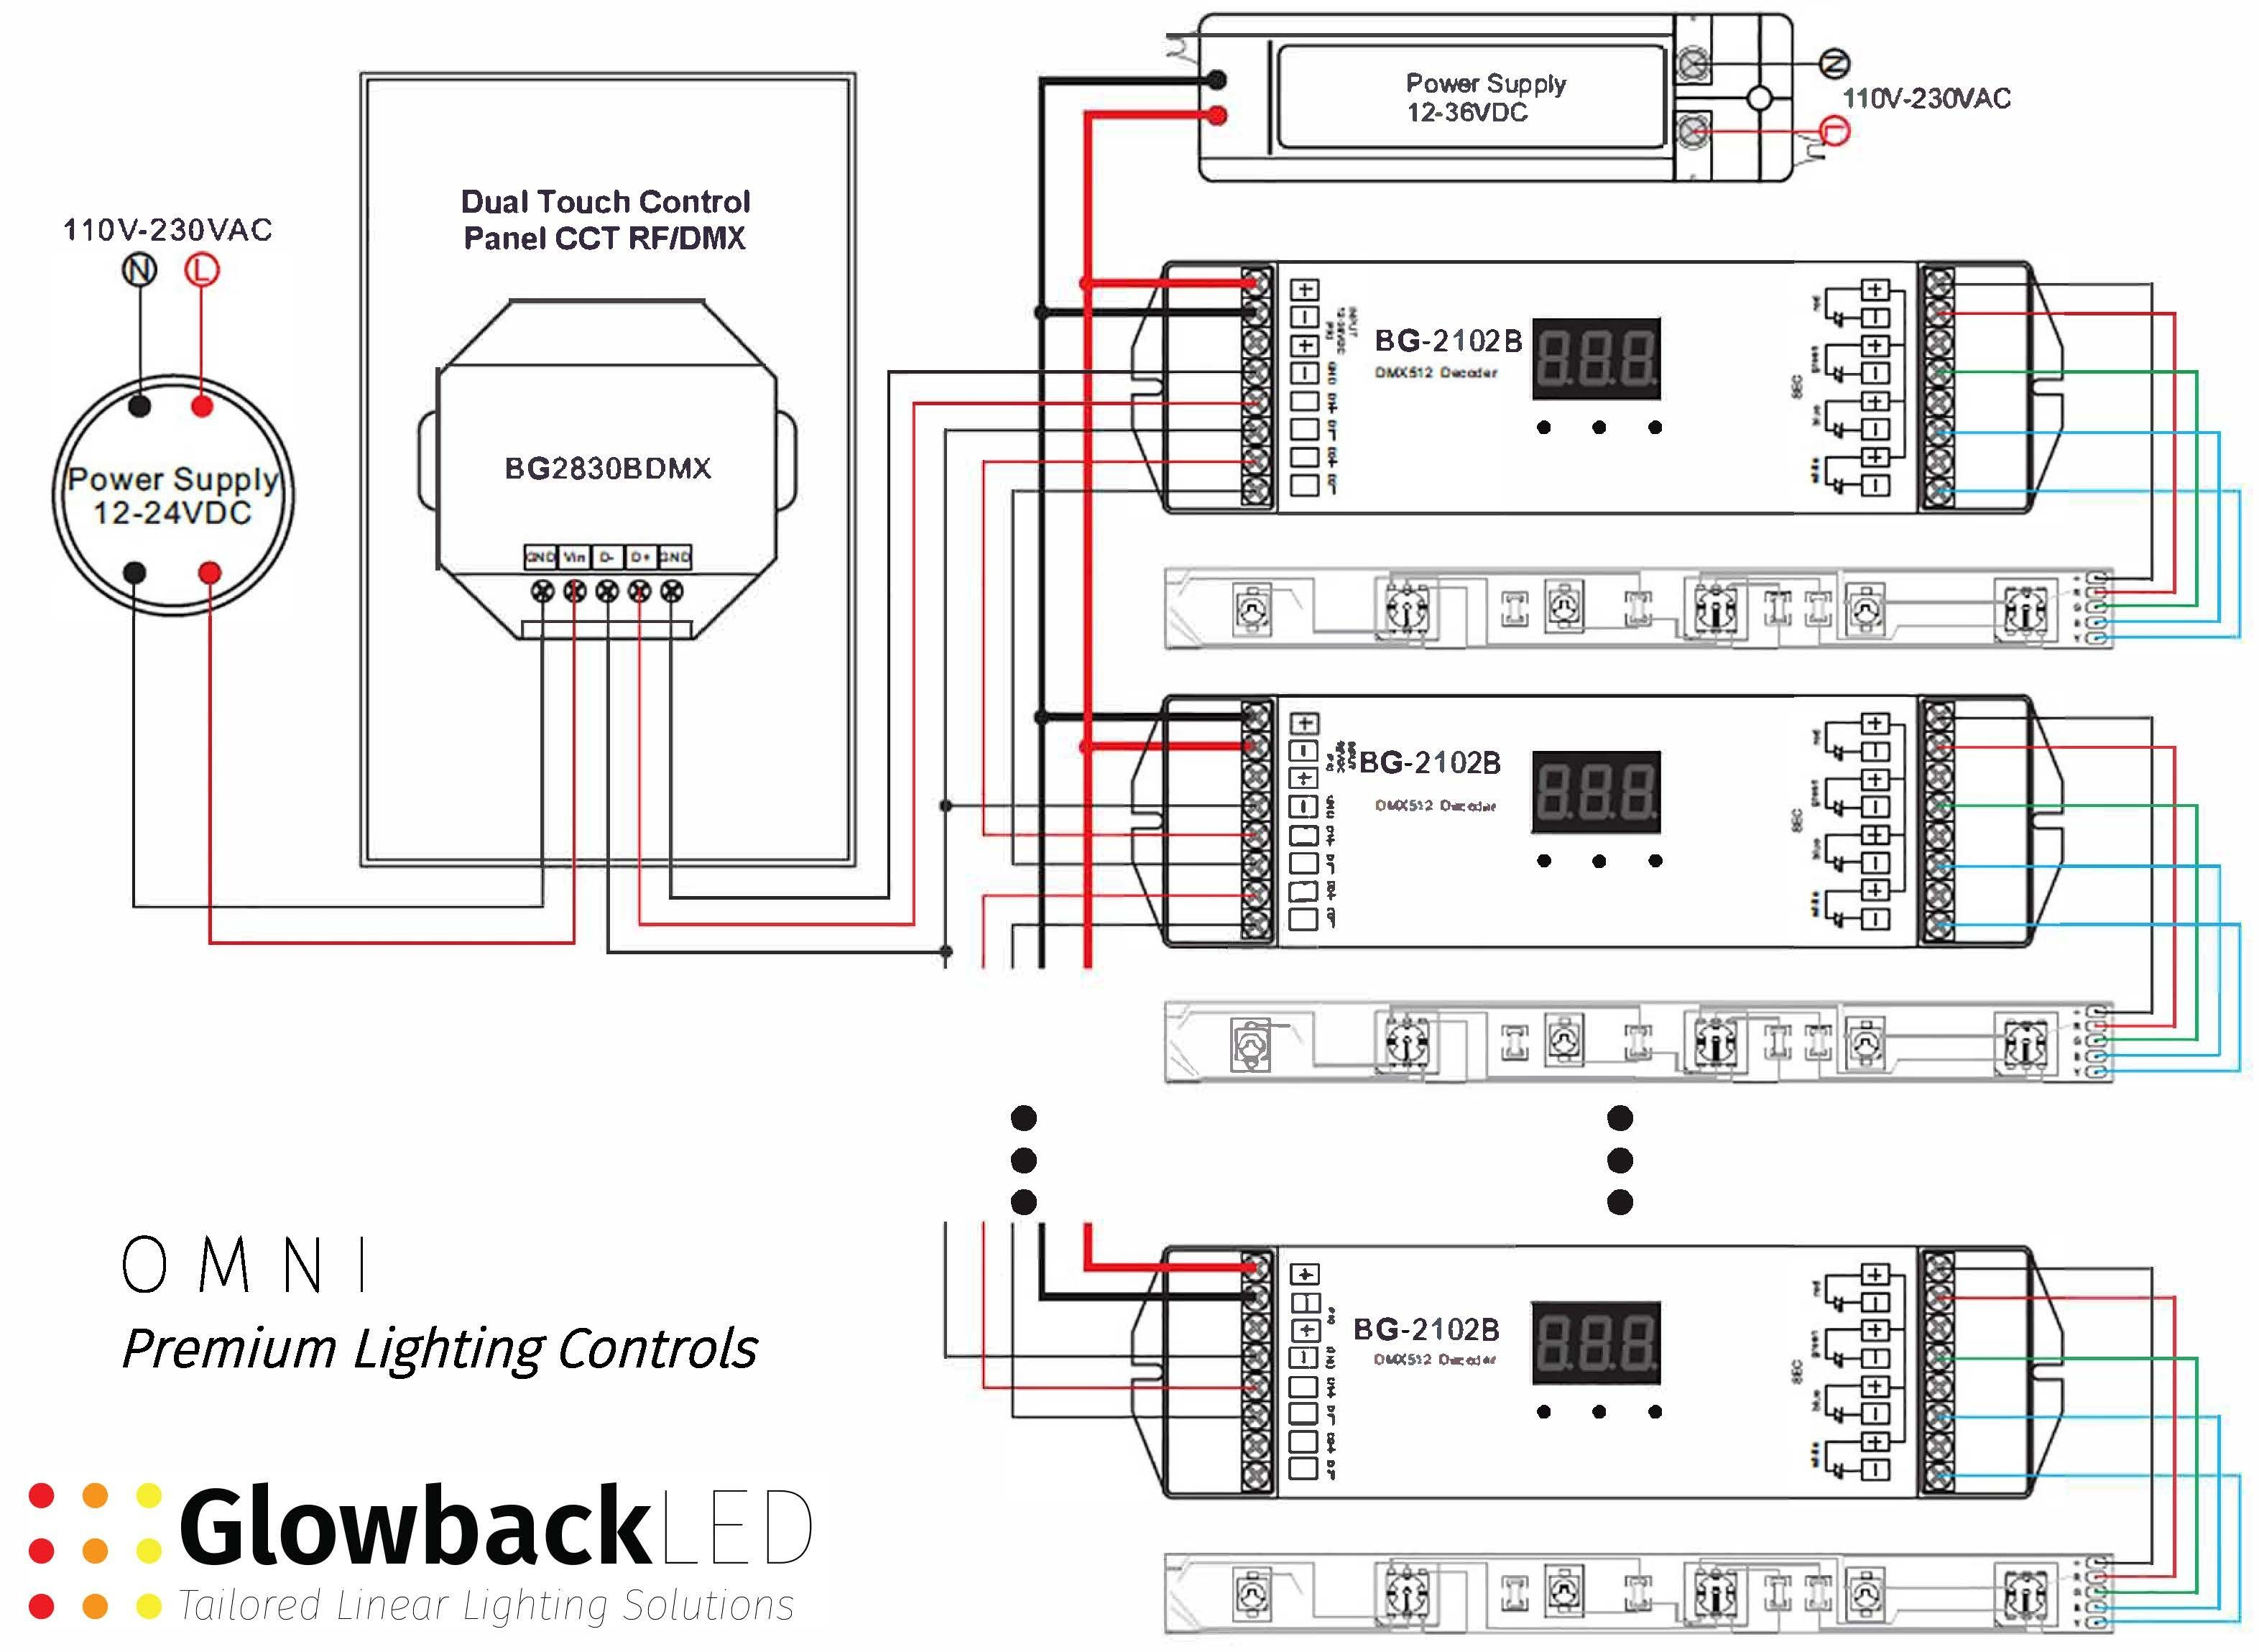 dali lighting control wiring diagram Download-Dmx Lighting Wiring Diagram Best Dmx Lighting Control Wiring Diagram Wiring Diagram 19-g